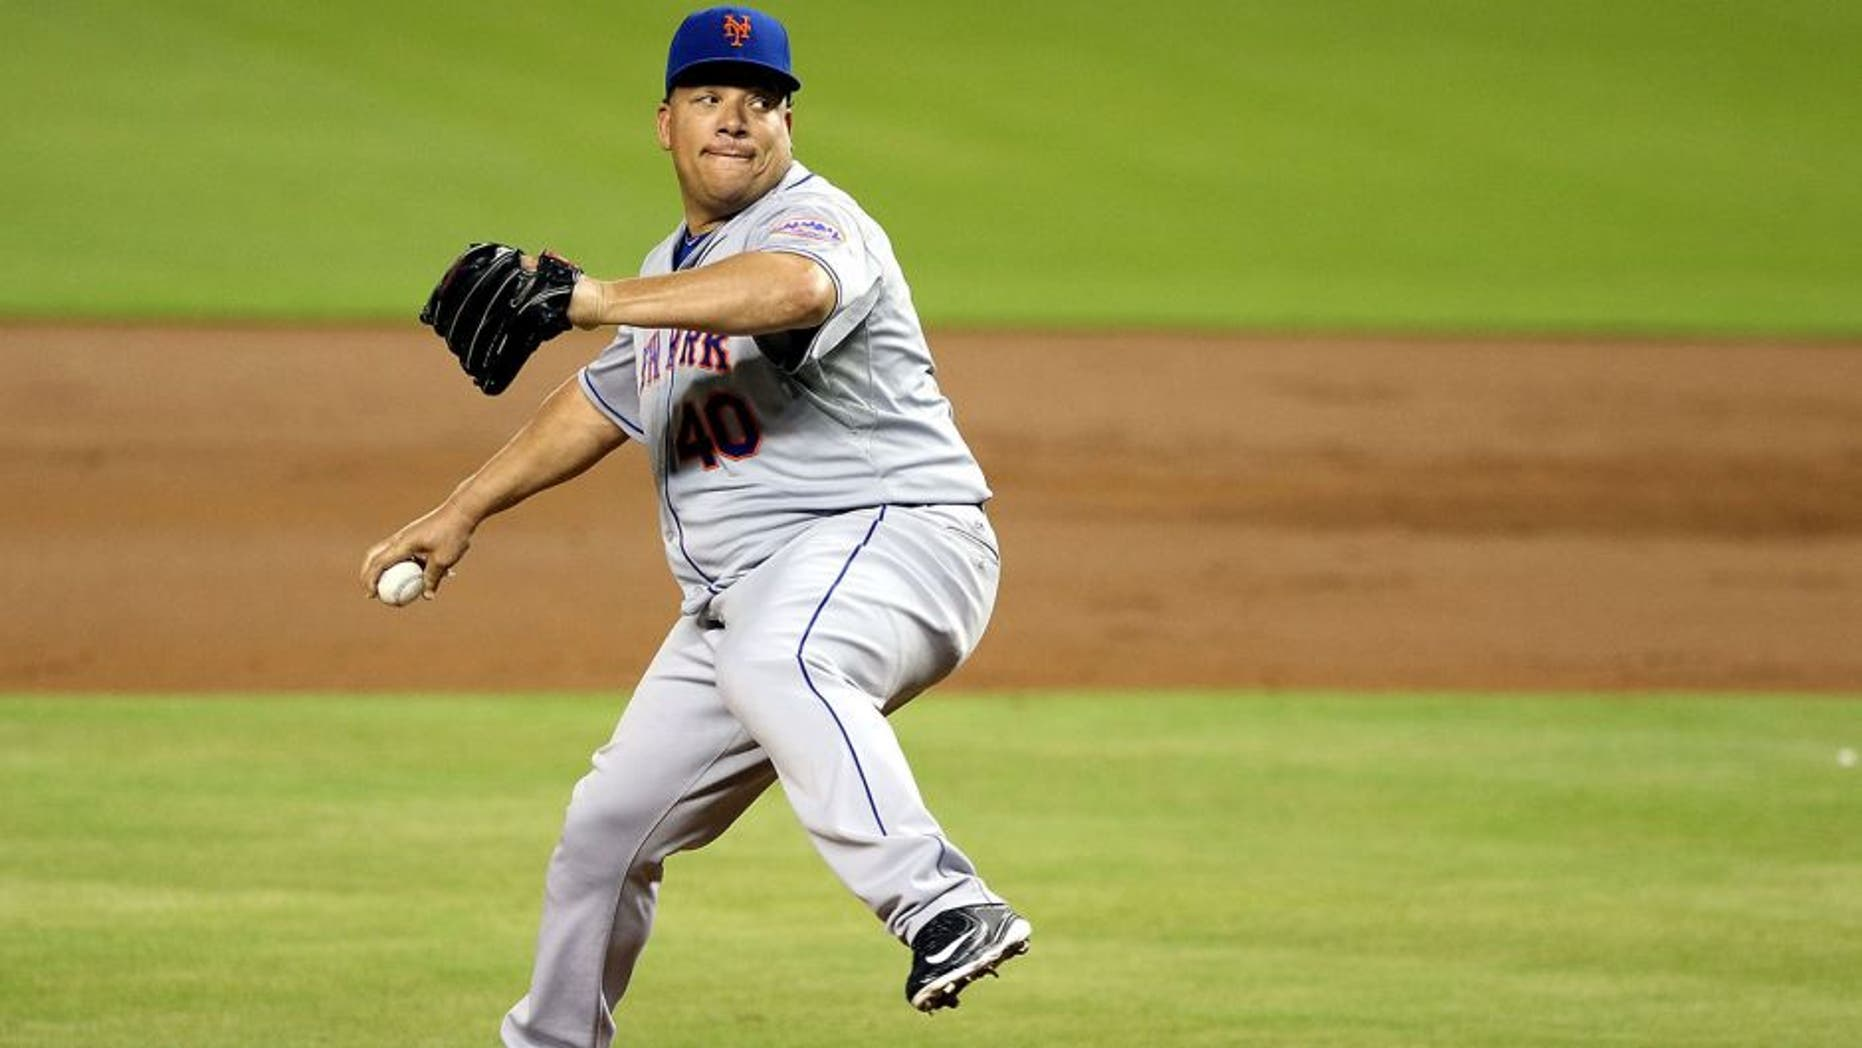 MIAMI, FL - SEPTEMBER 05: Pitcher Bartolo Colon #40 of the New York Mets throws during the first inning against the Miami Marlins at Marlins Park on September 5, 2015 in Miami, Florida. (Photo by Marc Serota/Getty Images)